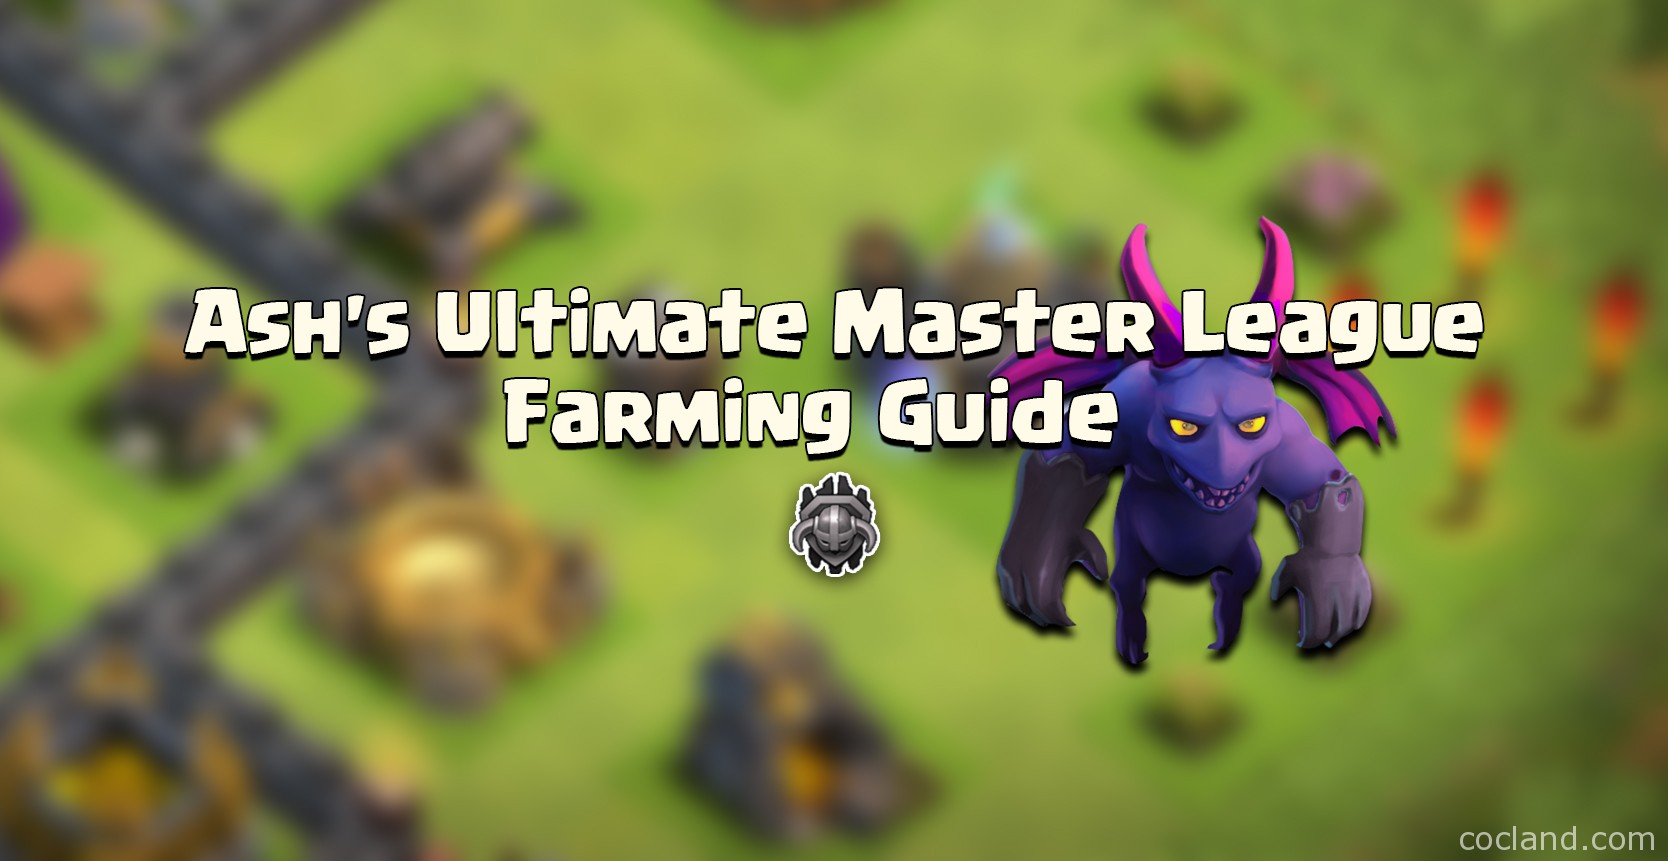 Master League Farmnig Guide by Ash